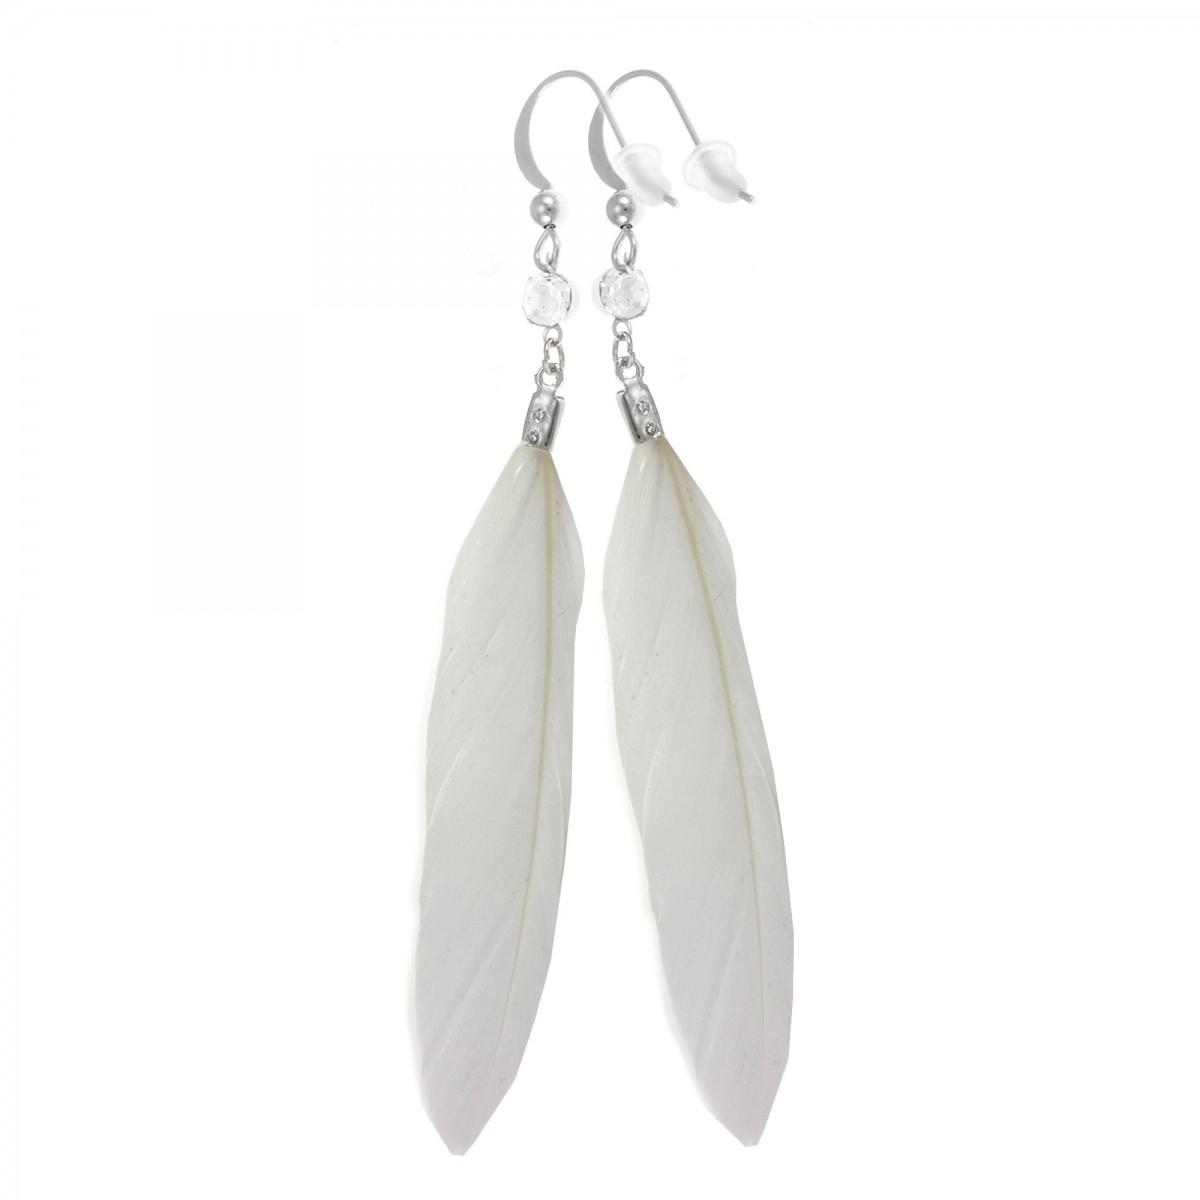 Boucles d'oreilles plumes blanches So Charm